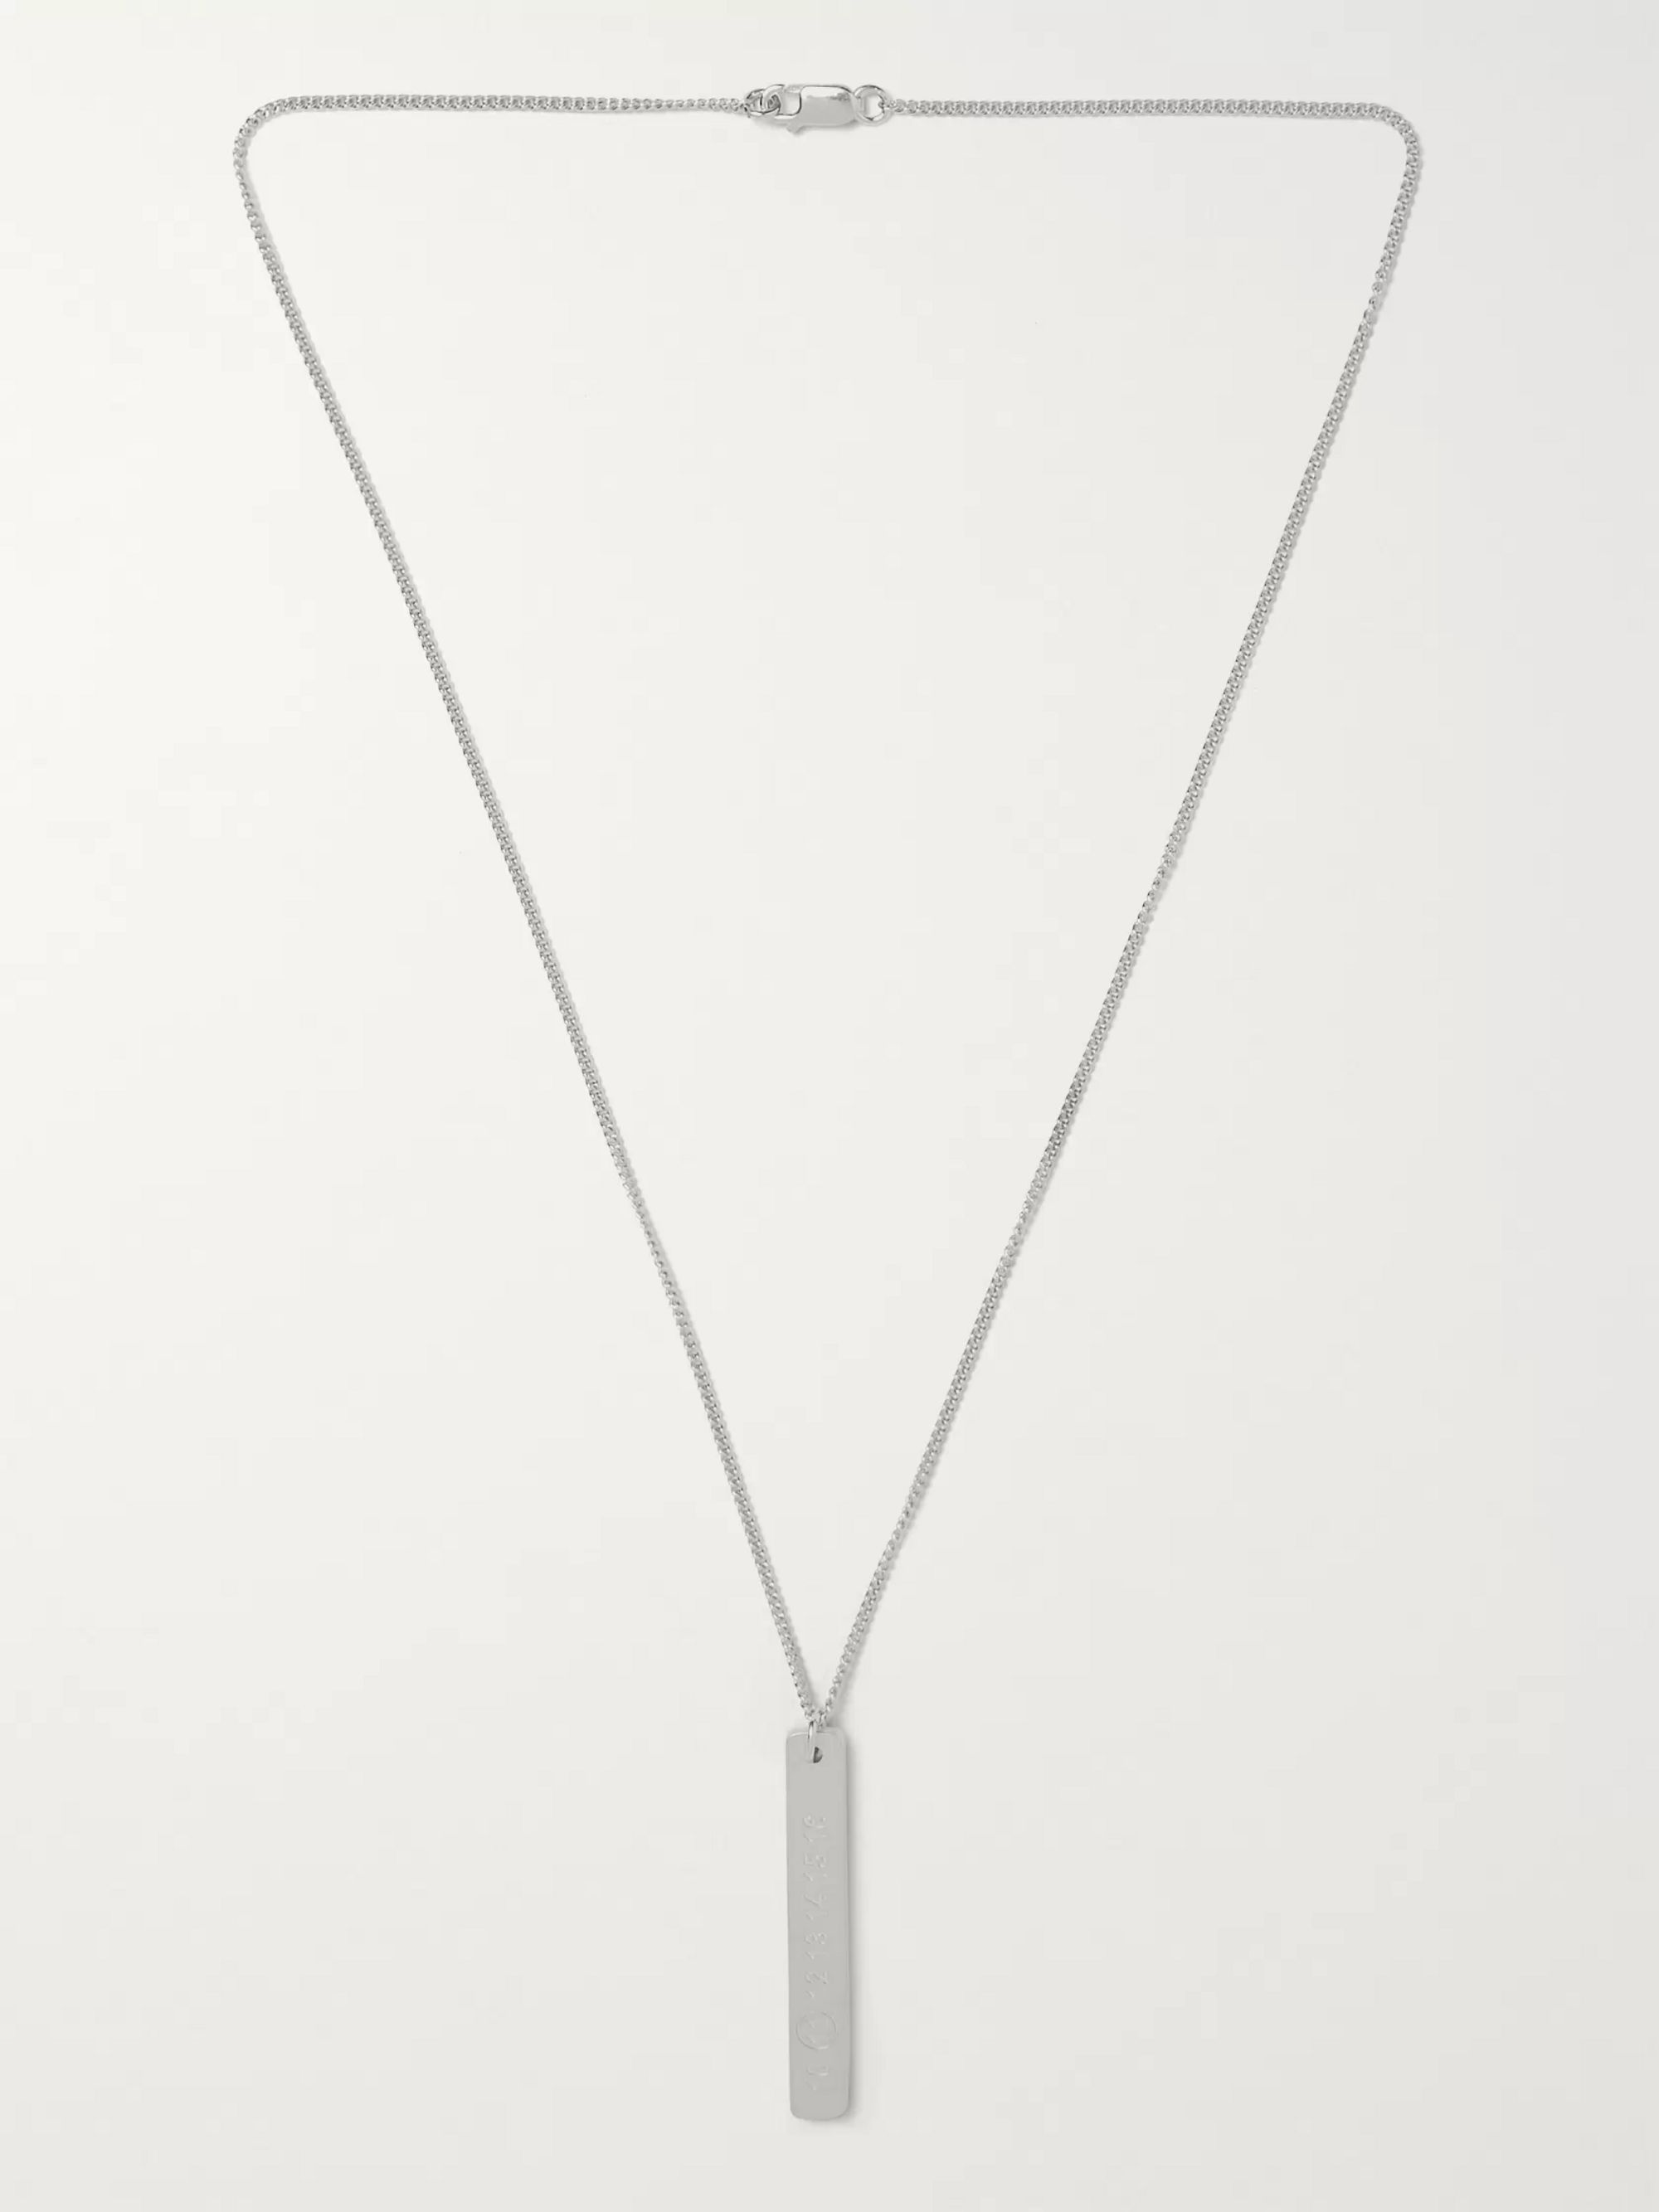 Maison Margiela Sterling Silver Necklace